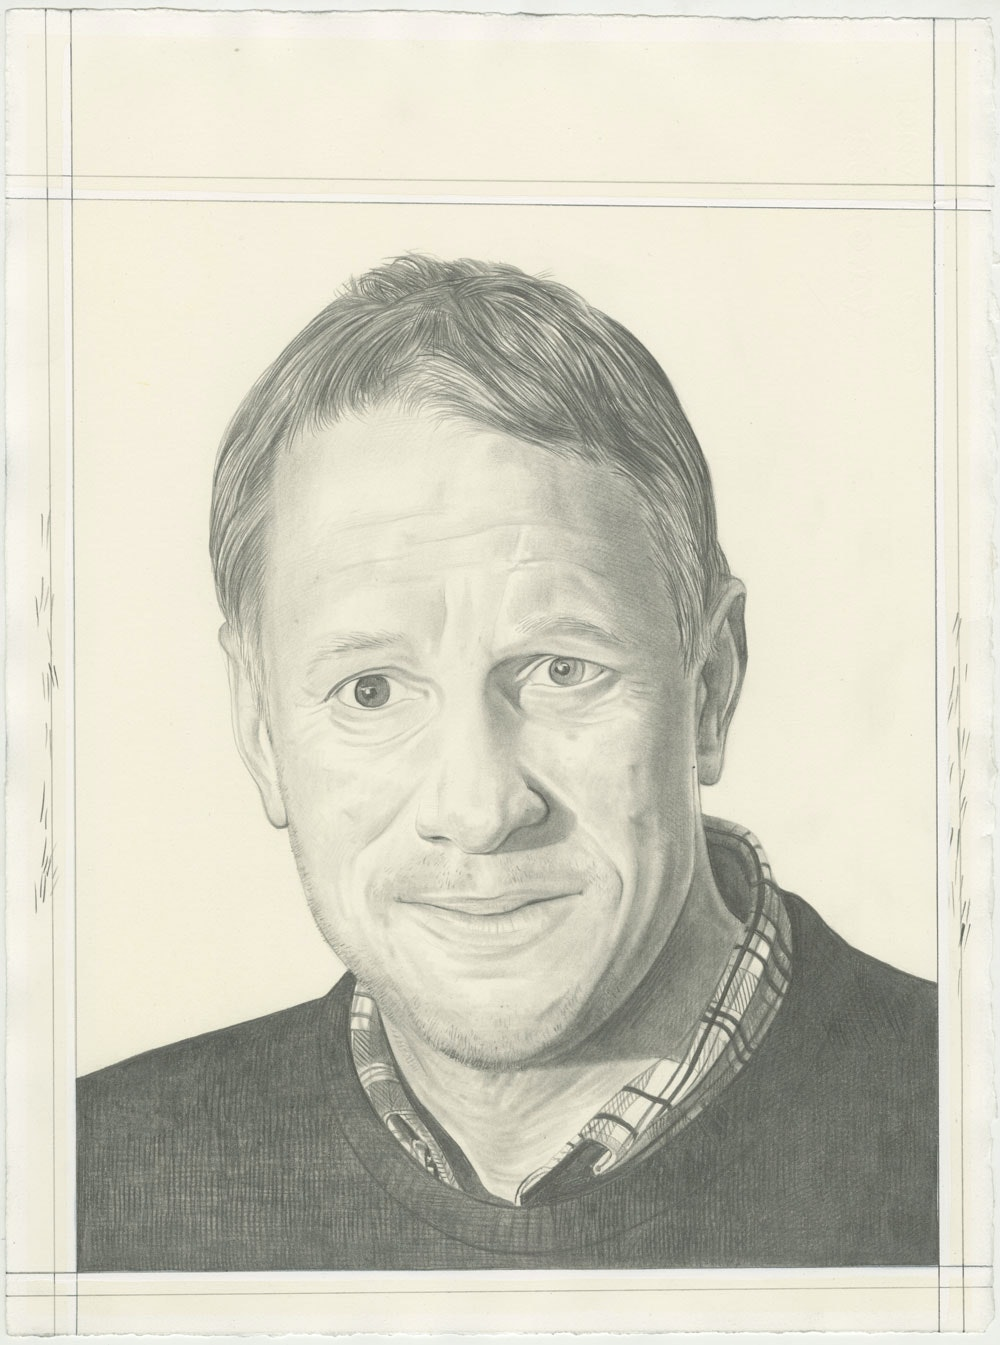 Jeff Elrod. Pencil on paper by Phong H. Bui